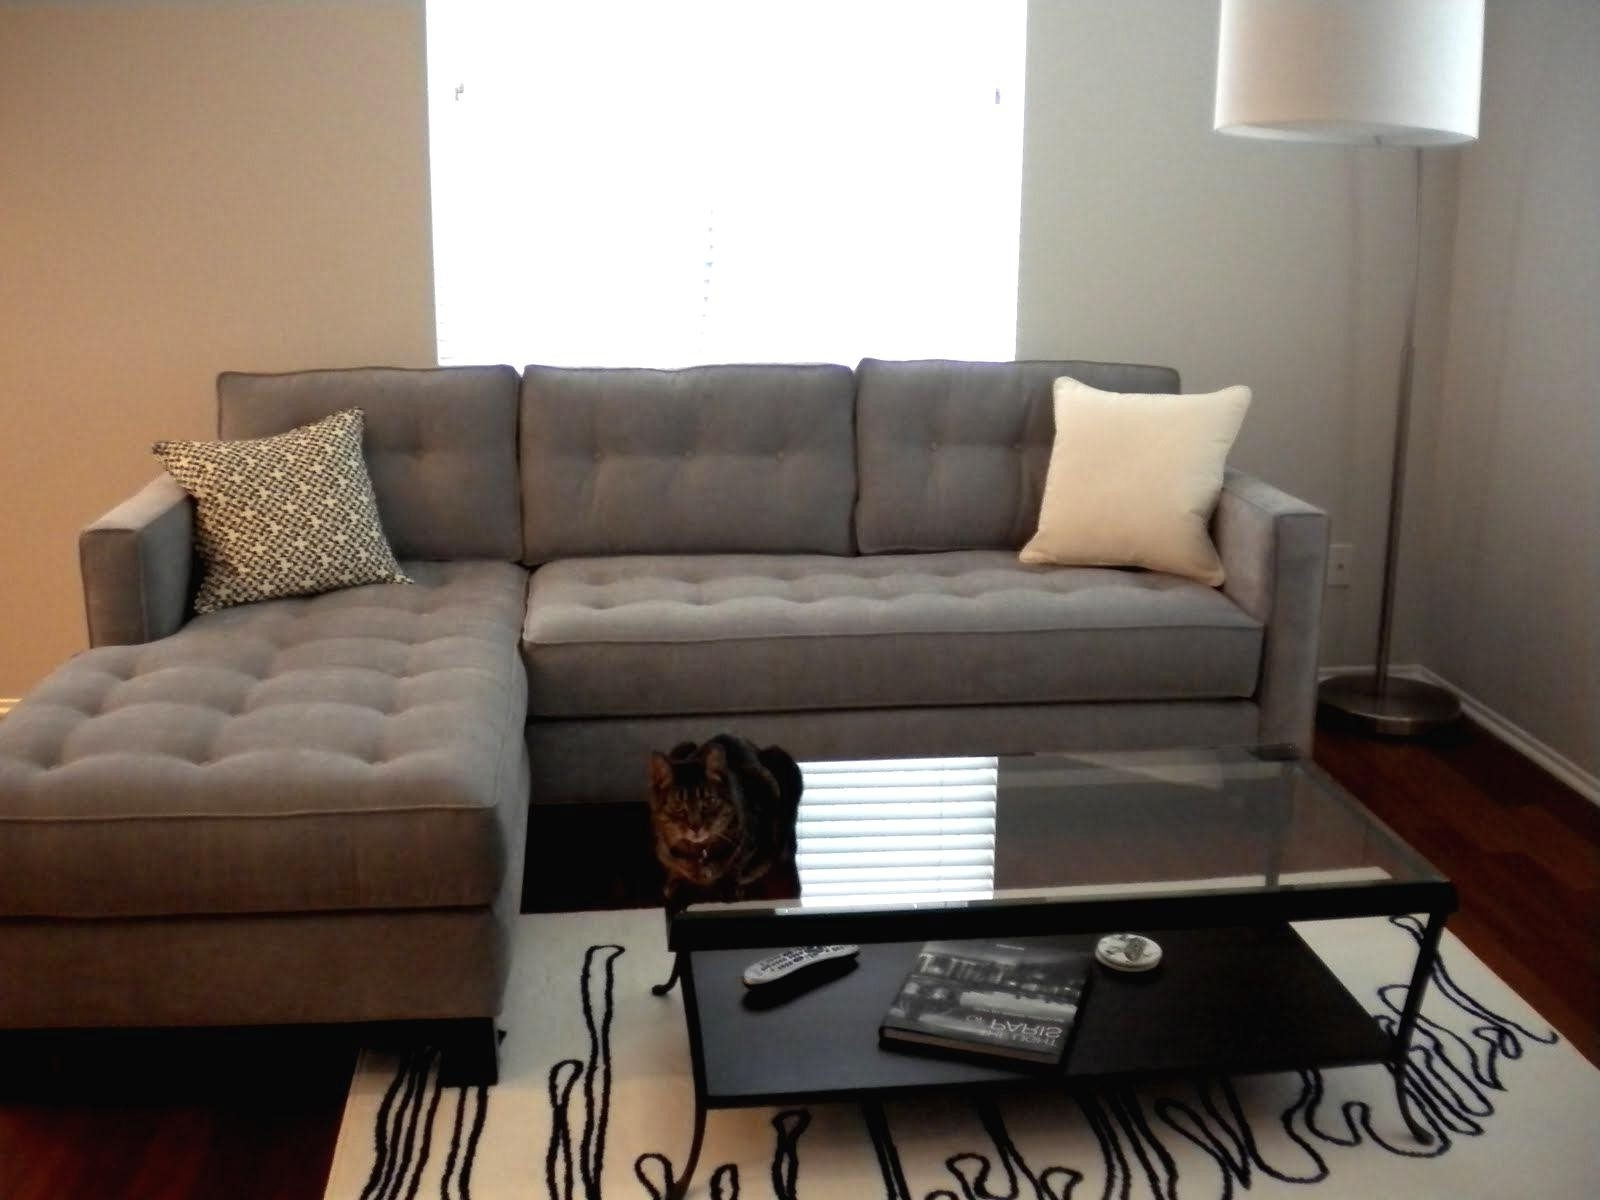 Kmart Furniture Sale (View 7 of 20)